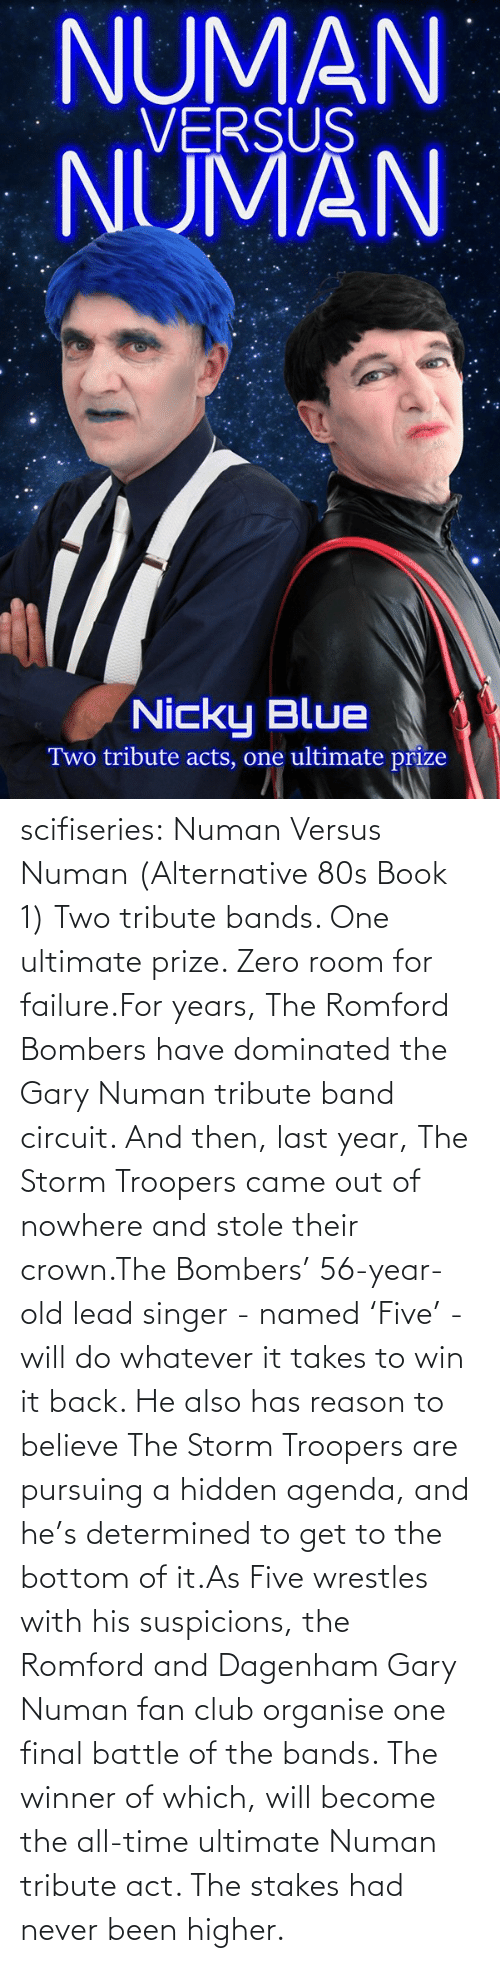 prize: NUMAN  VERSUS  NUMAN  Nicky Blue  Two tribute acts, one ultimate prize scifiseries:  Numan Versus Numan (Alternative 80s Book 1) Two tribute bands. One ultimate prize. Zero room for failure.For  years, The Romford Bombers have dominated the Gary Numan tribute band  circuit. And then, last year, The Storm Troopers came out of nowhere and  stole their crown.The Bombers' 56-year-old lead singer - named  'Five' - will do whatever it takes to win it back. He also has reason to  believe The Storm Troopers are pursuing a hidden agenda, and he's  determined to get to the bottom of it.As Five wrestles with his  suspicions, the Romford and Dagenham Gary Numan fan club organise one  final battle of the bands. The winner of which, will become the all-time  ultimate Numan tribute act. The stakes had never been higher.